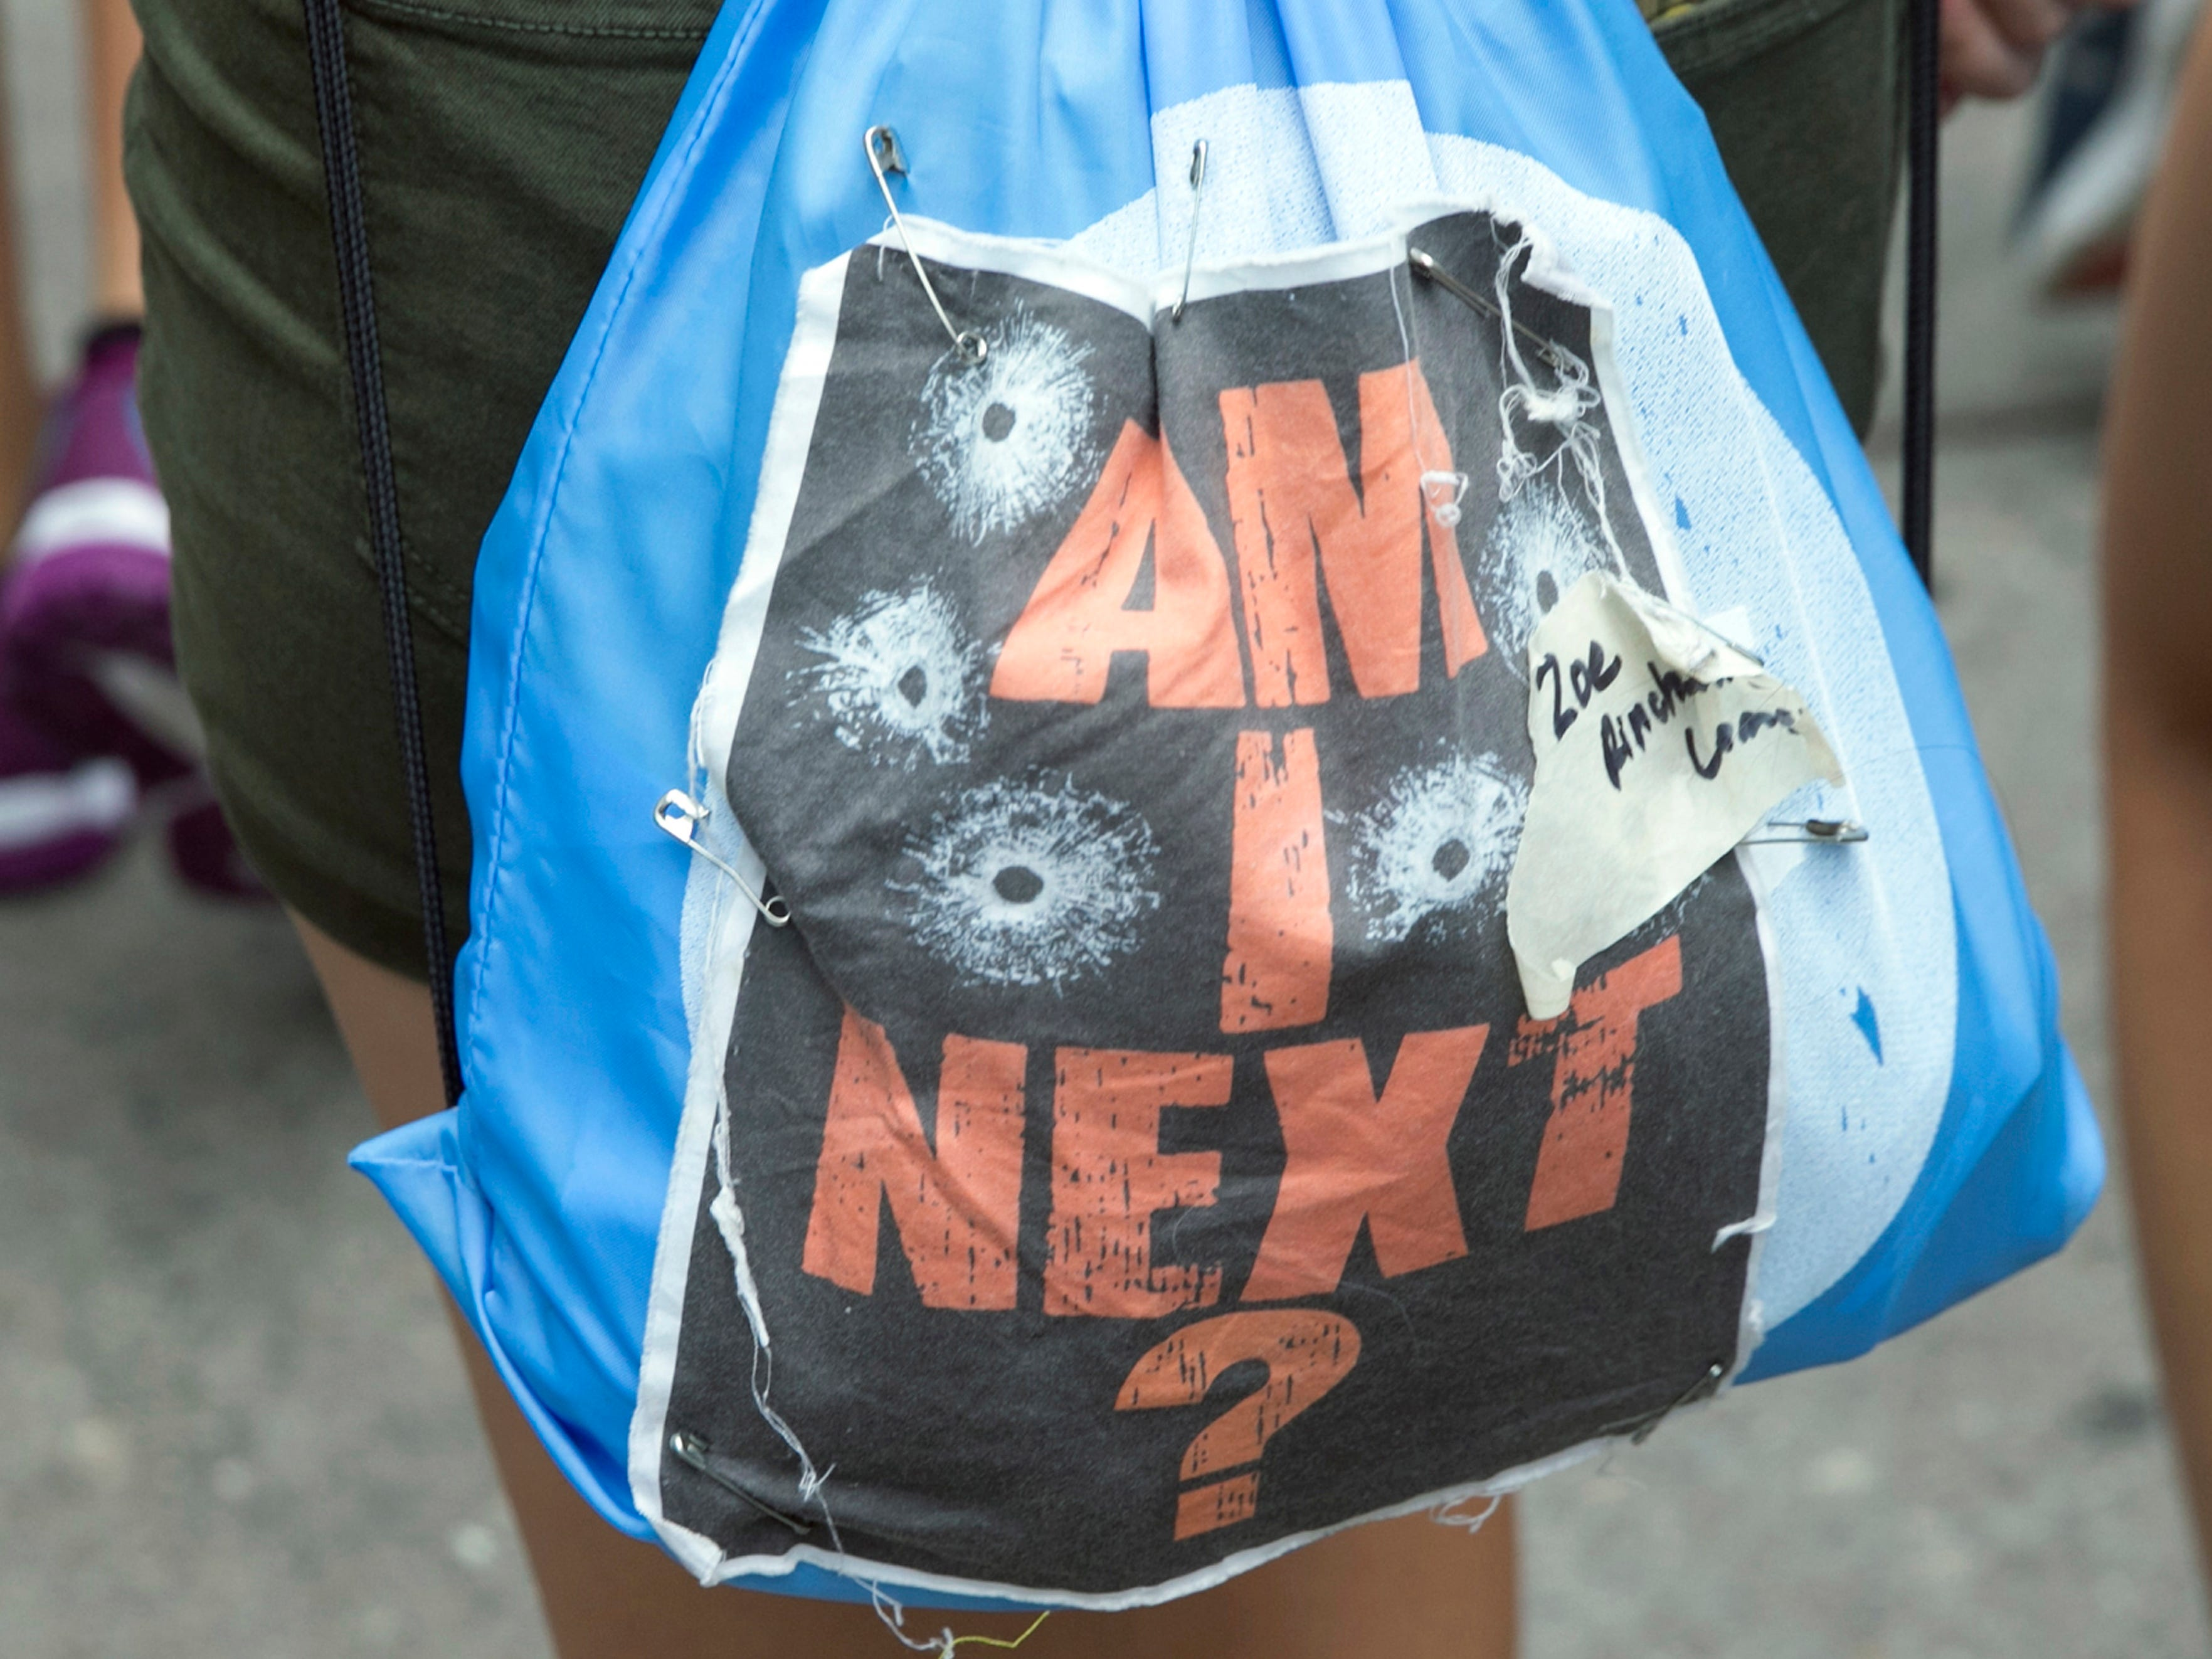 A youth wears a backpack with a sign that reads 'Am I Next?' during a youth march to protest gun violence, in Worcester, Mass. on Aug. 22, 2018.